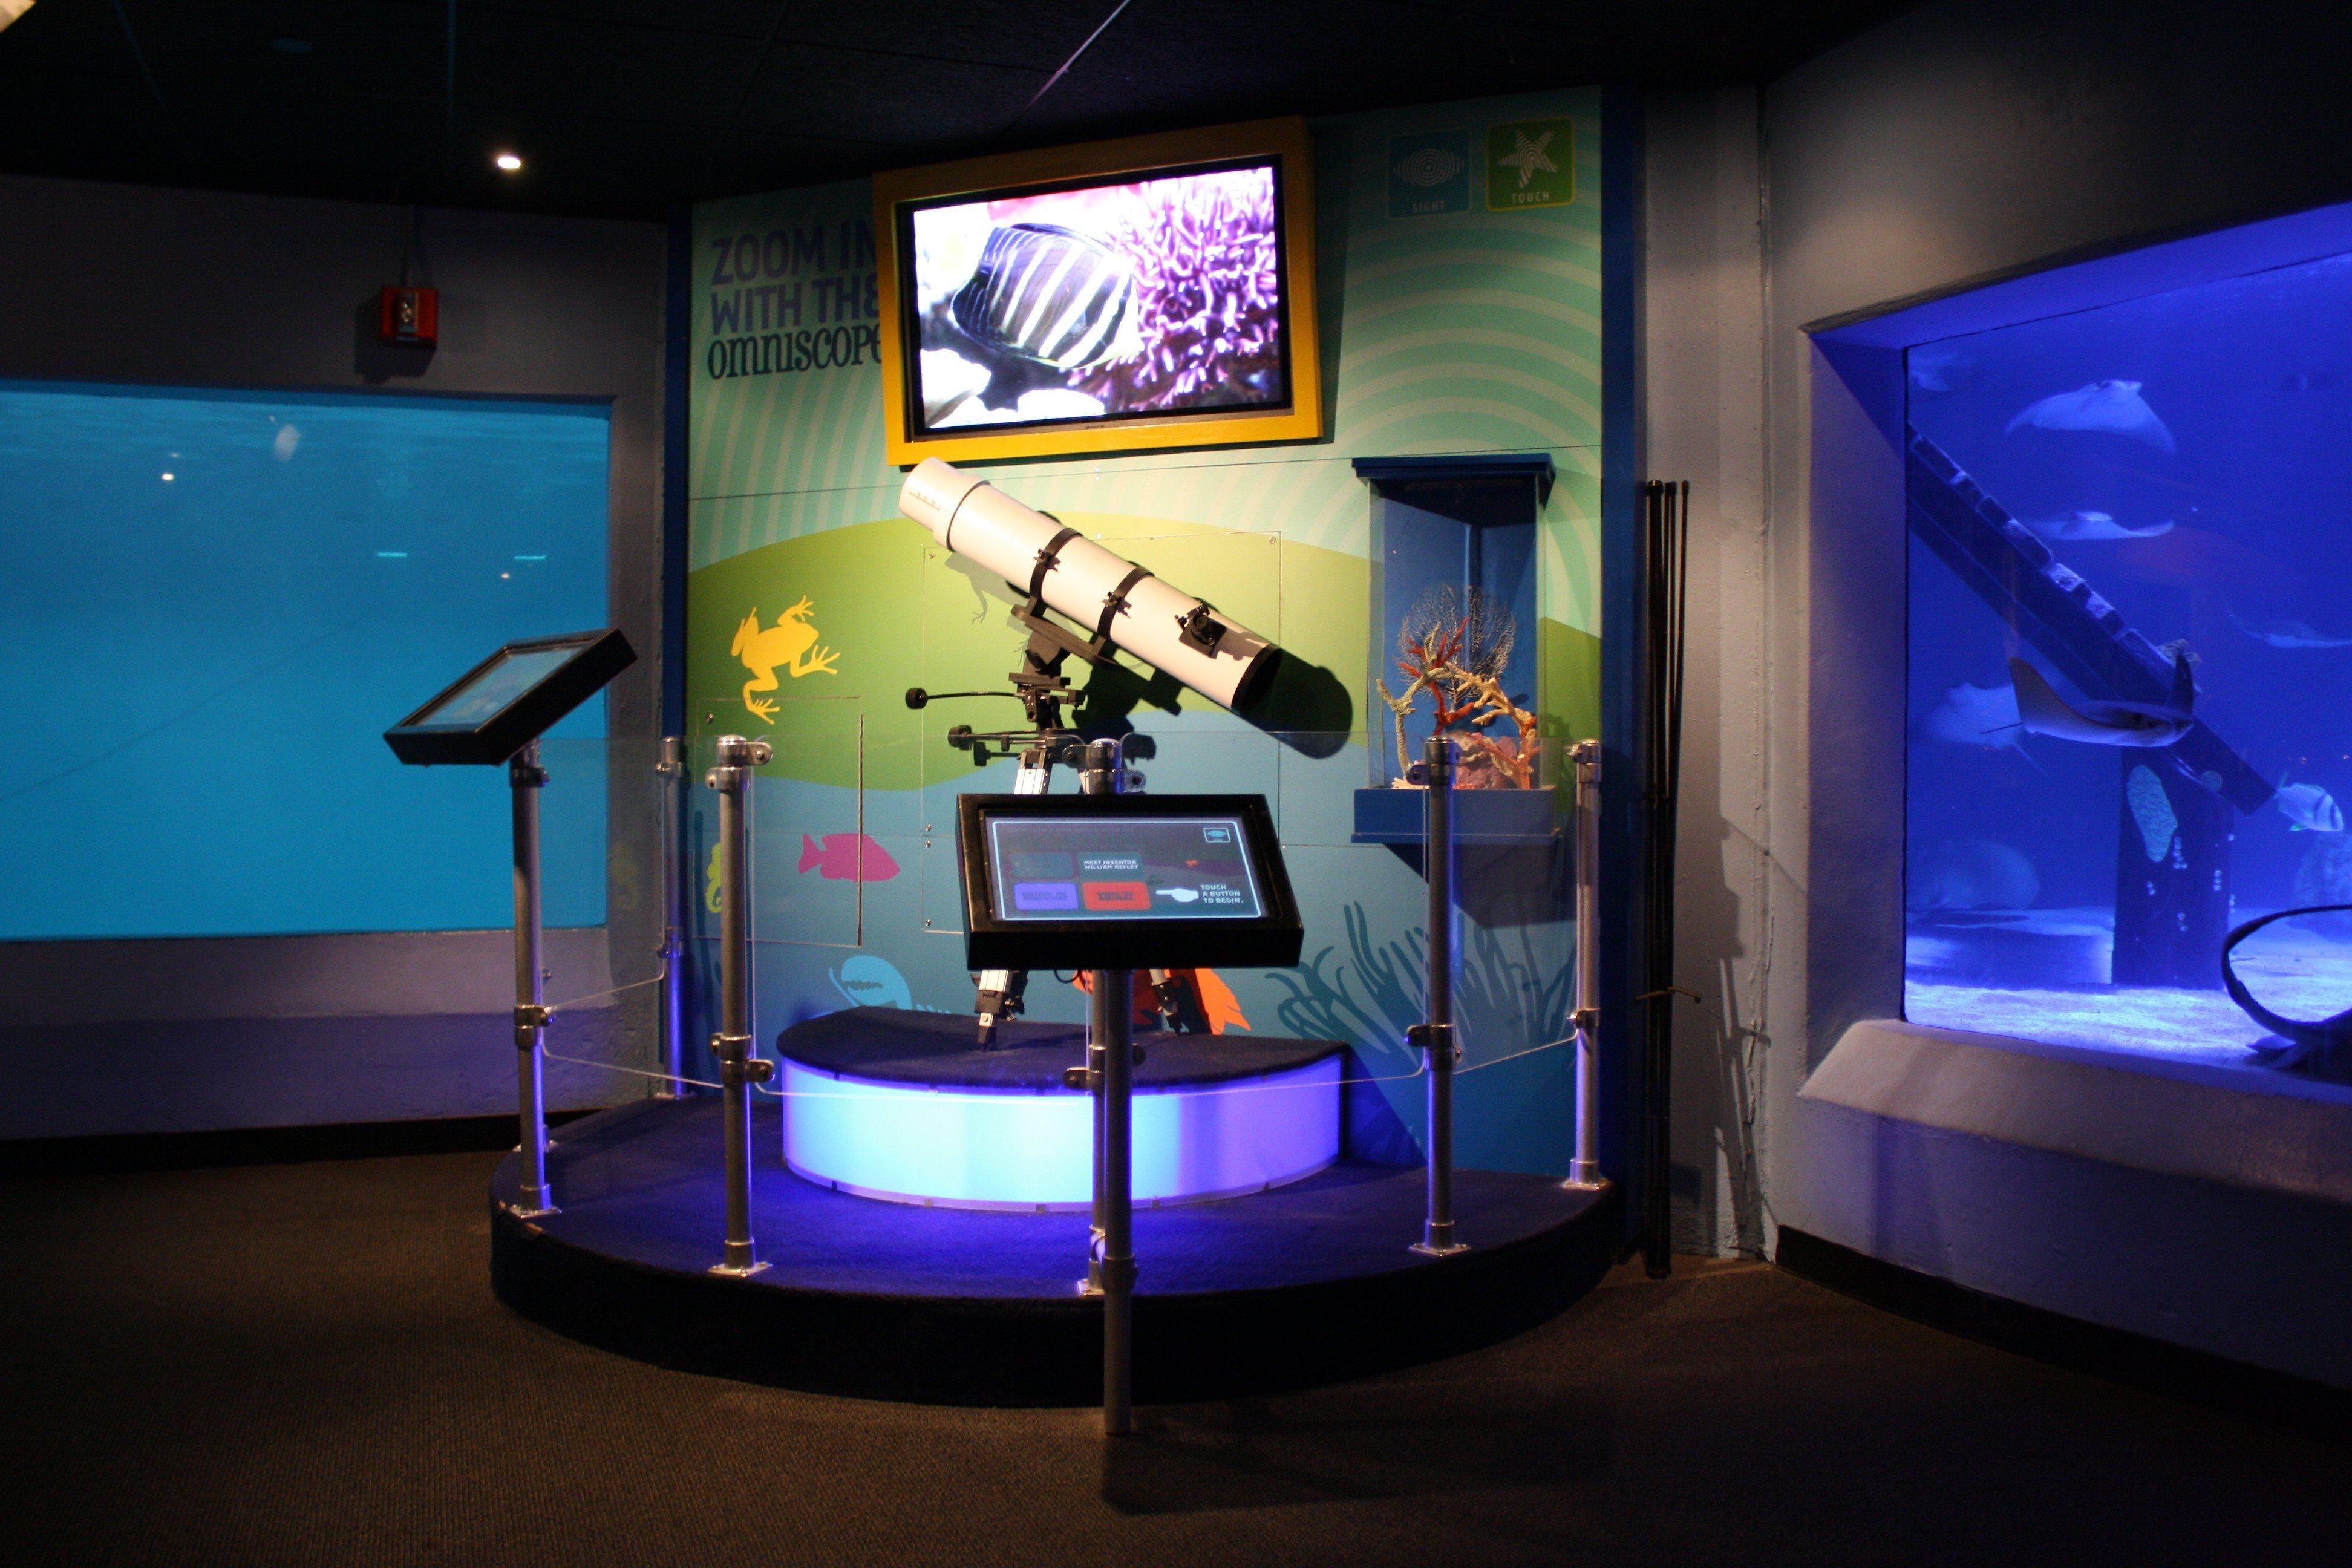 Aquarium Exhibit Sound, Lighting and Special Effects – How Guests Benefit from Innovation